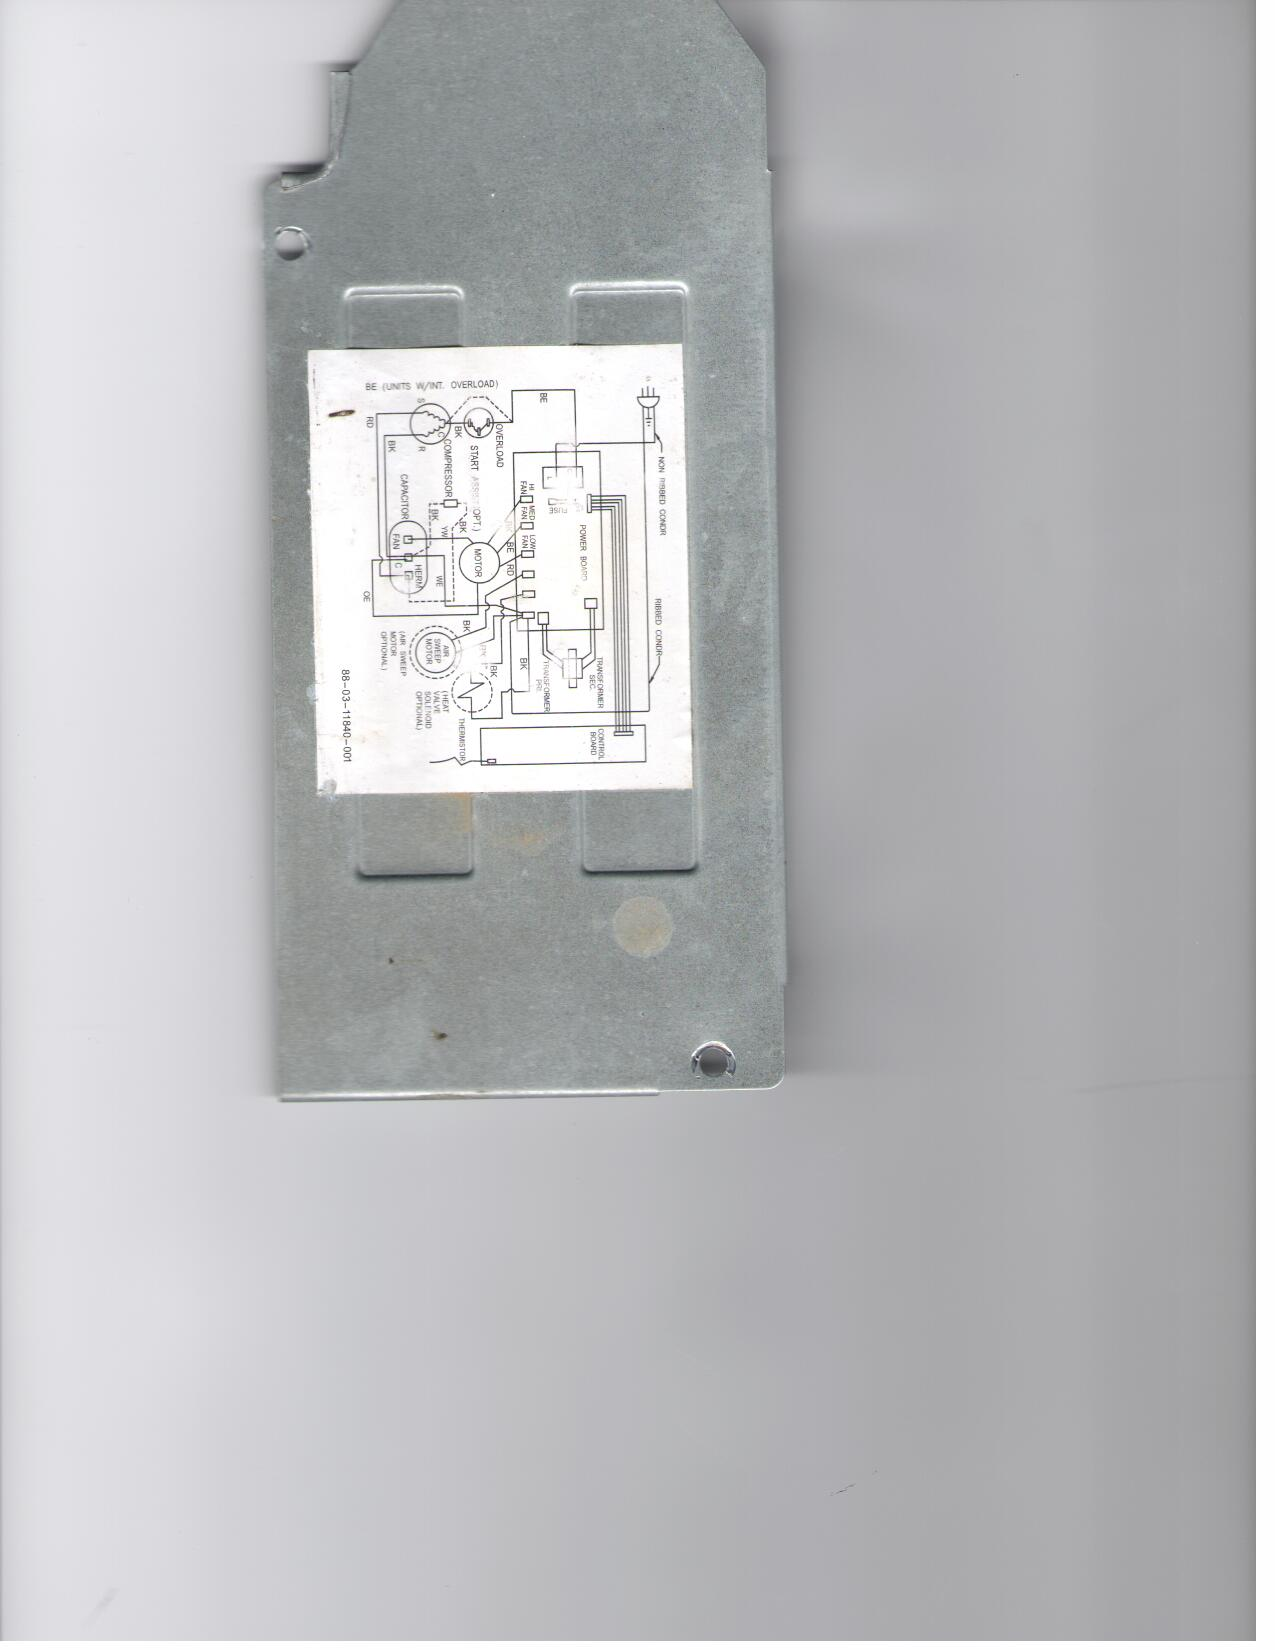 Wiring Diagram Of Fedders Ac C42acd1vf Air Conditioner